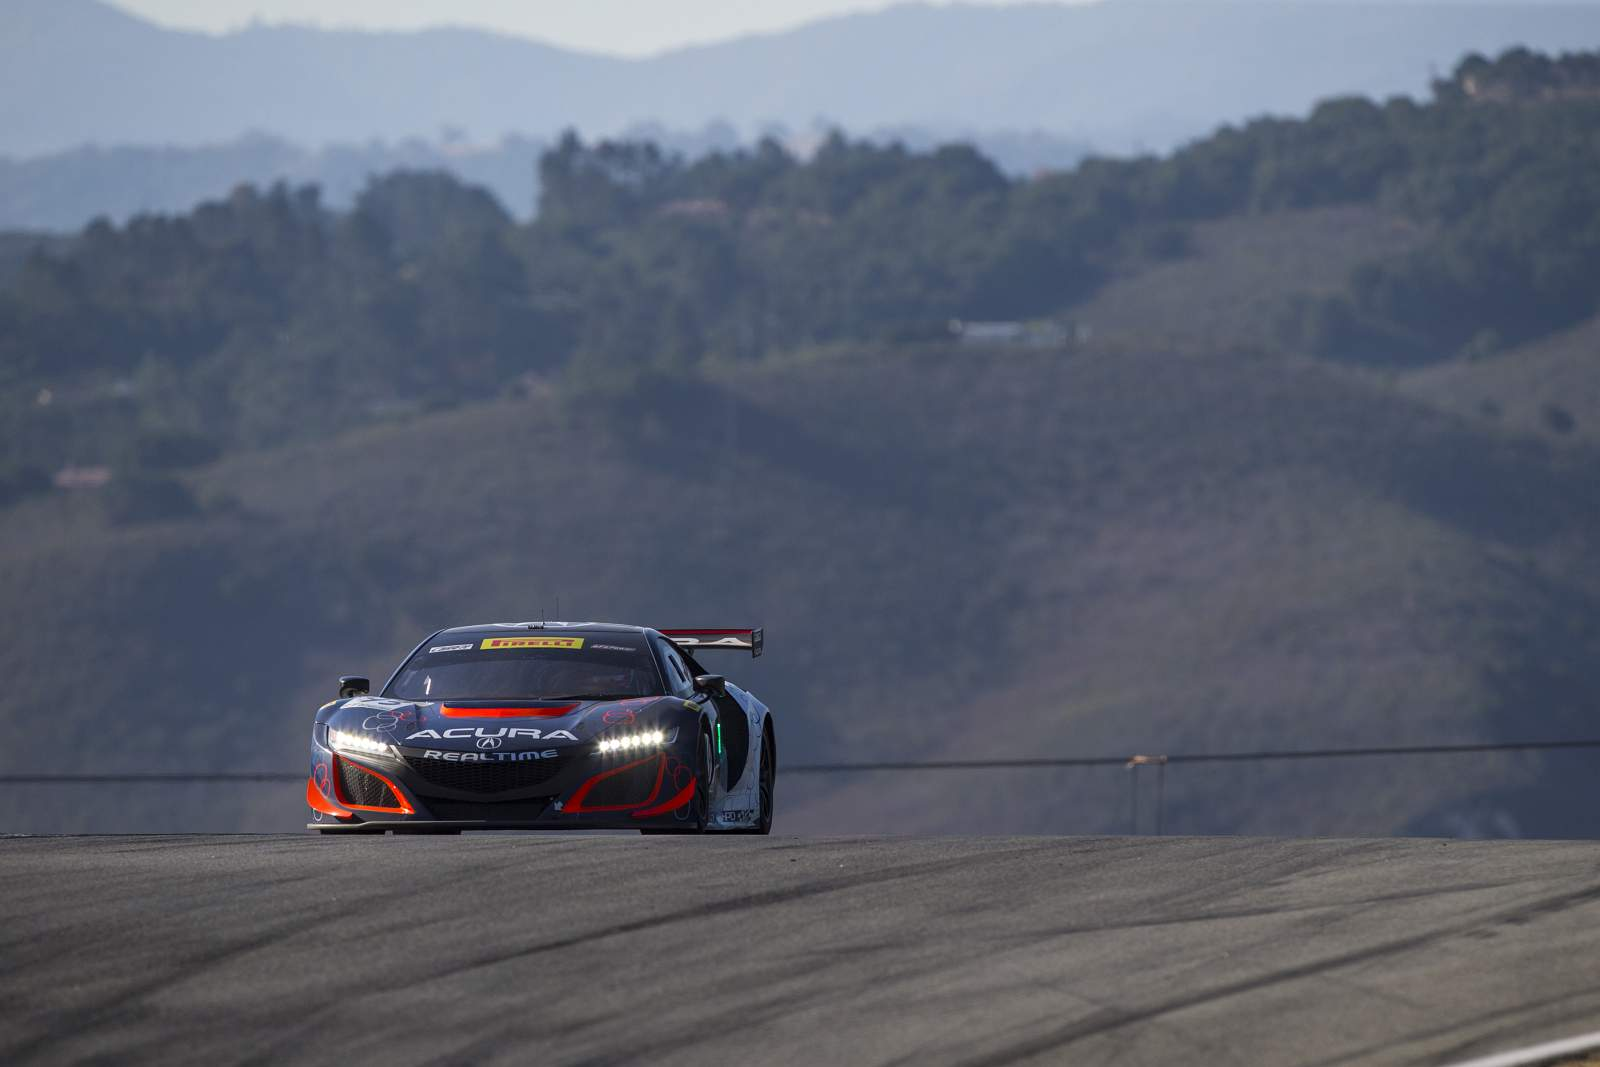 peter-kox-realtime-racing-pirelli-world-challenge-california-033